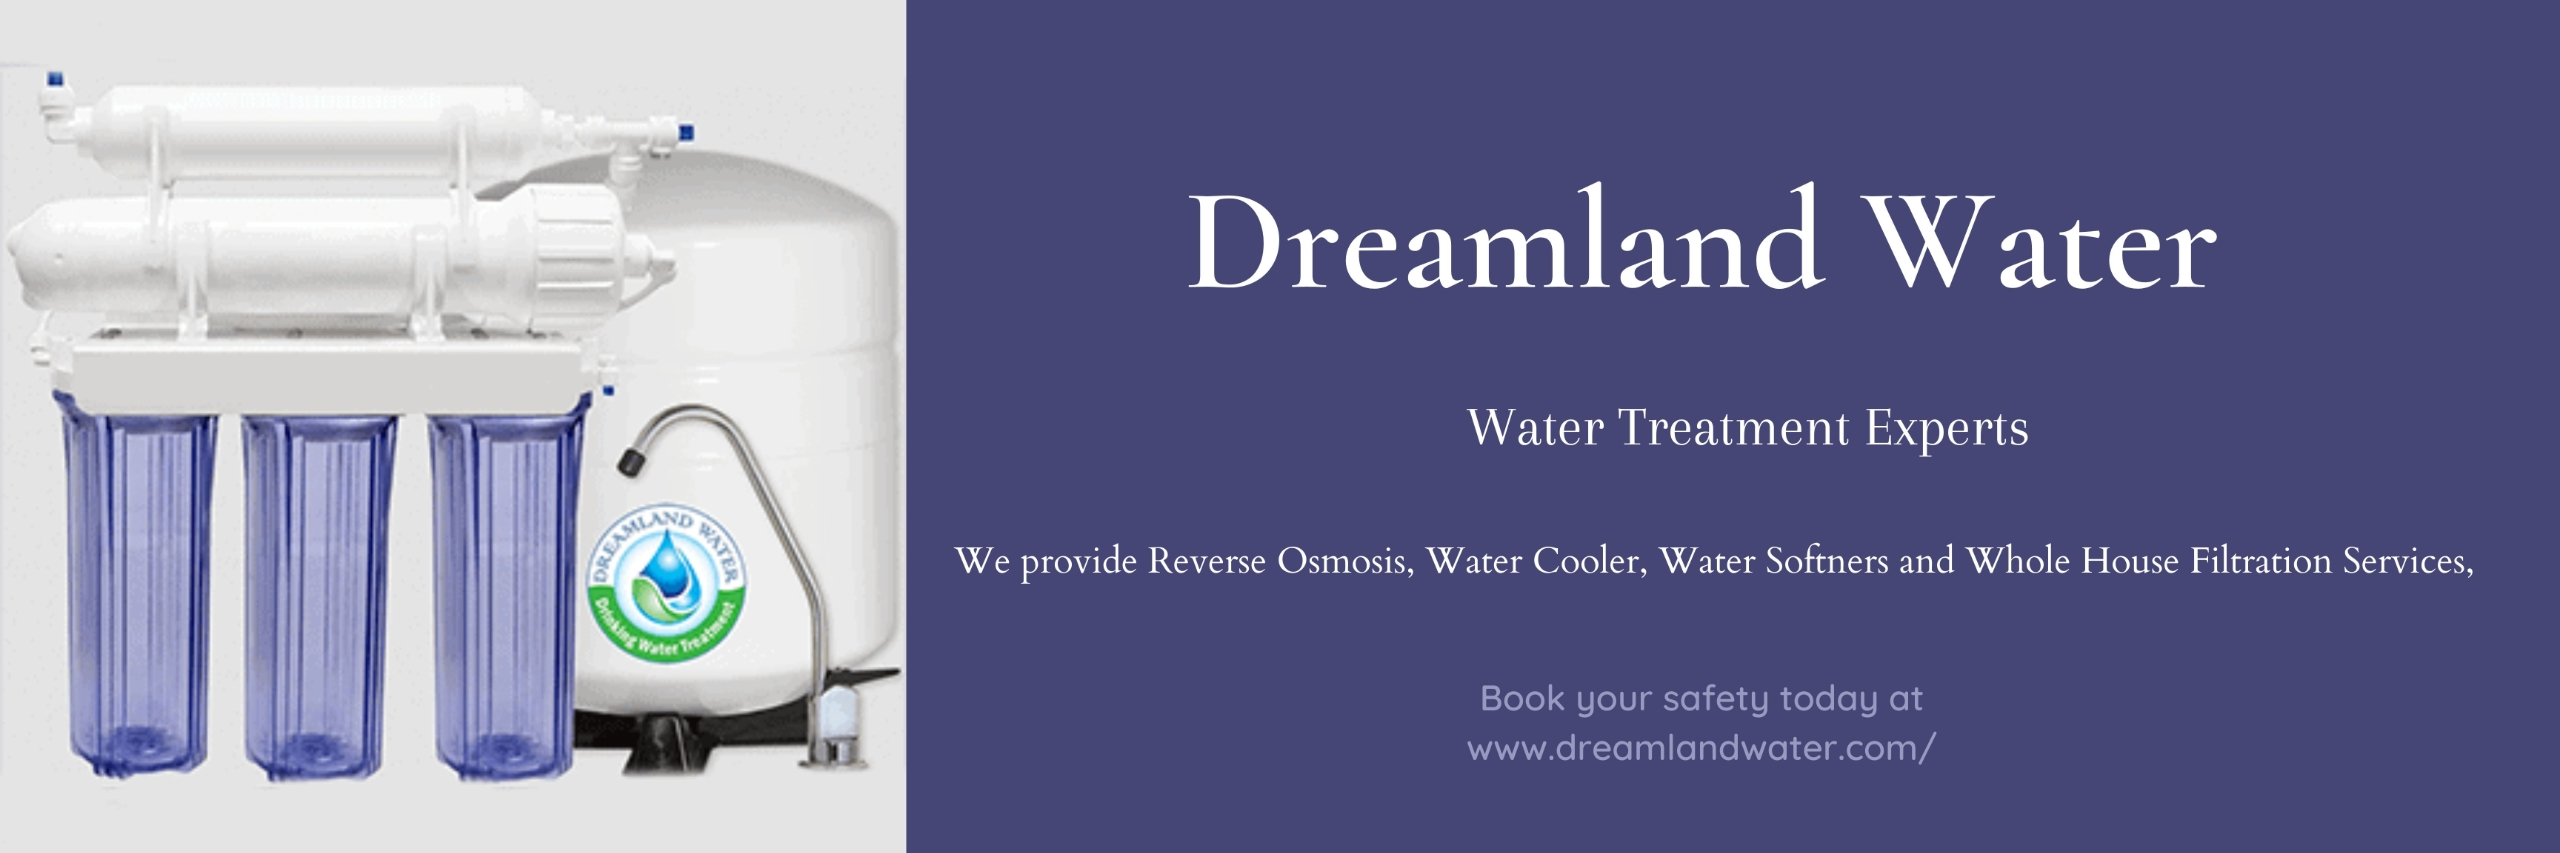 Dreamland Water (@dreamlandwater) Cover Image